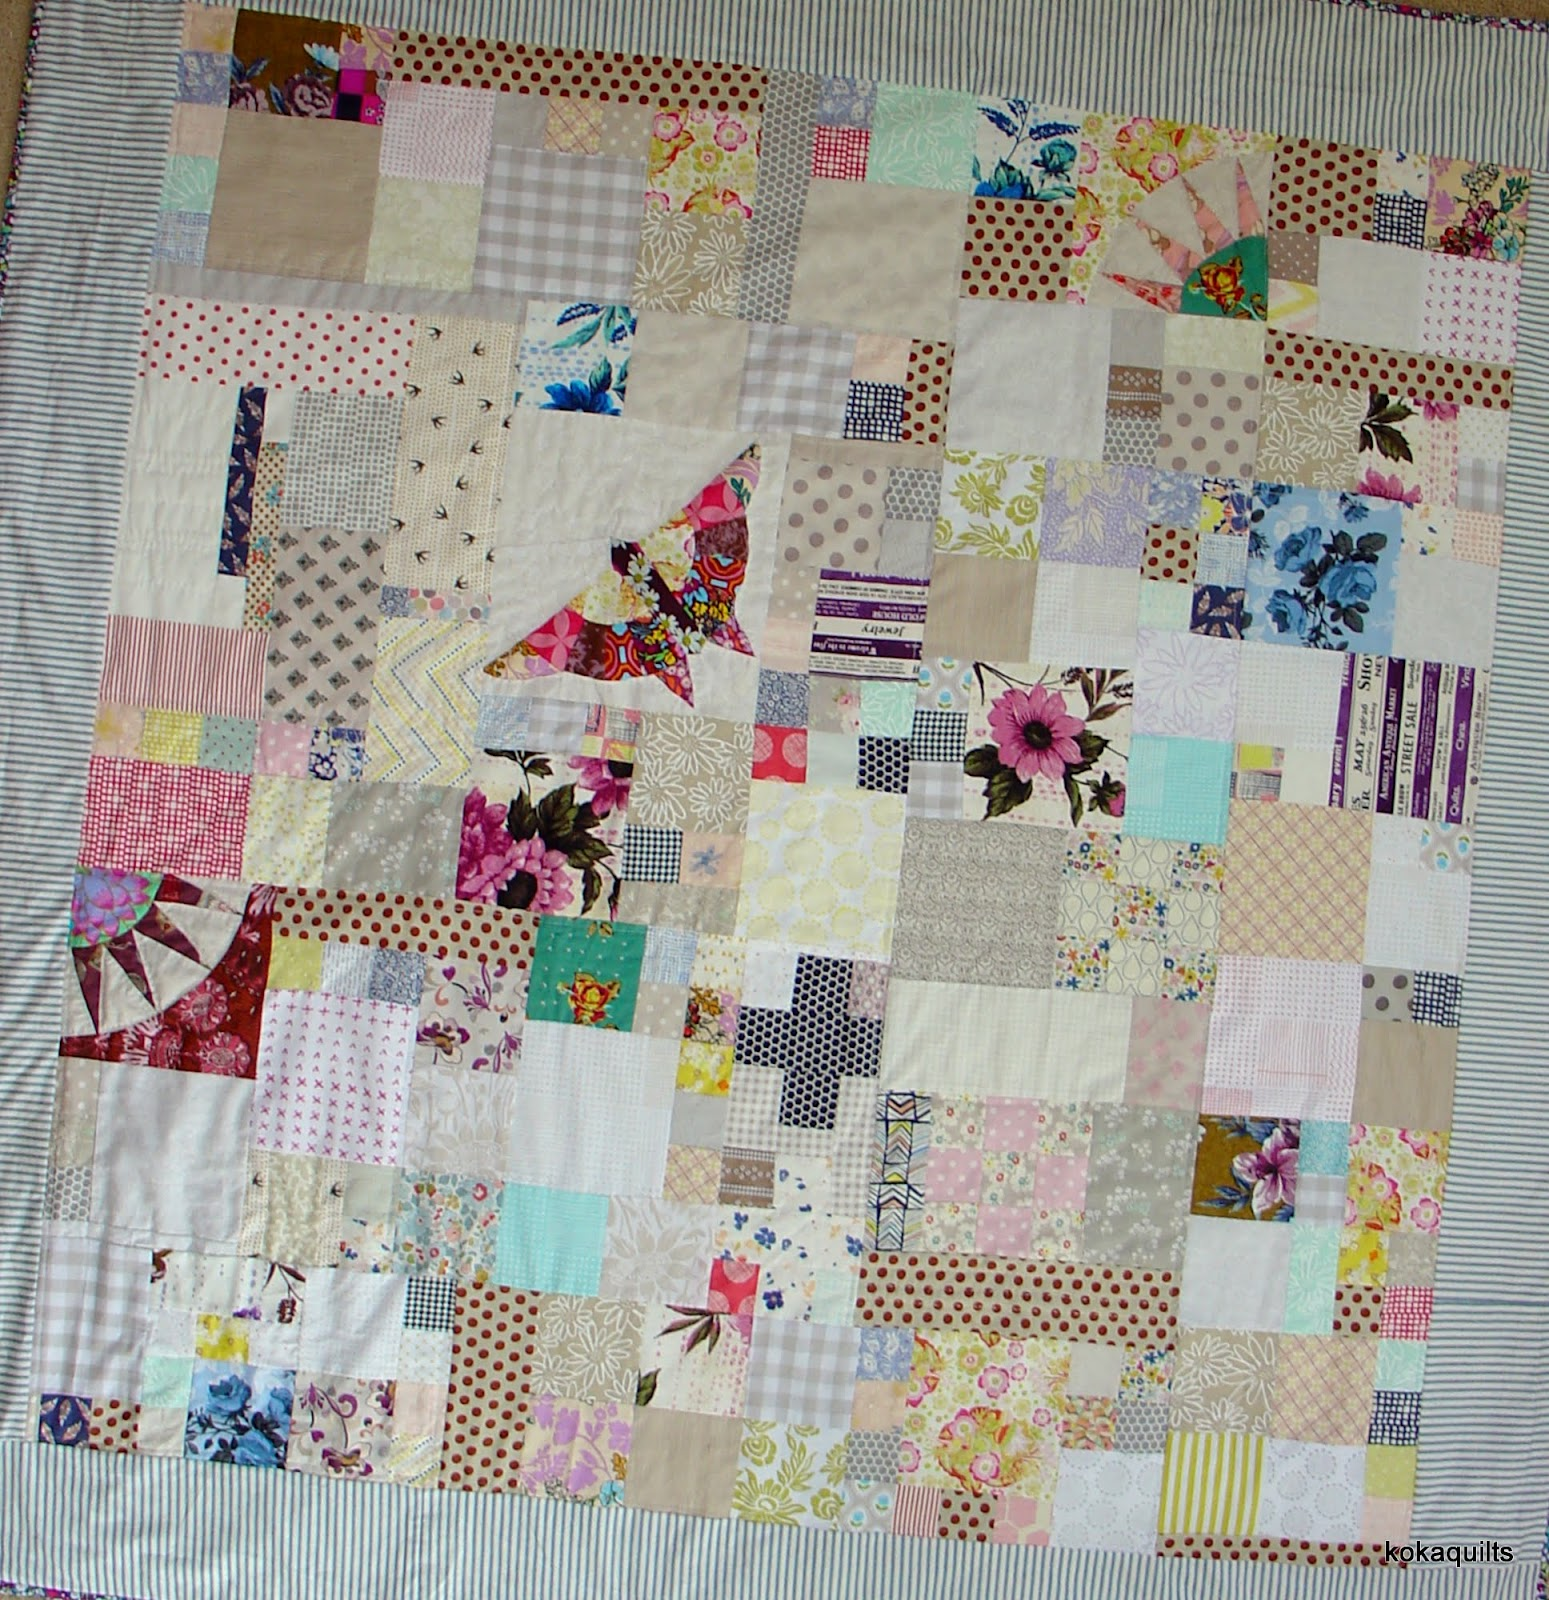 kokaquilts 2017 Finished Quilts